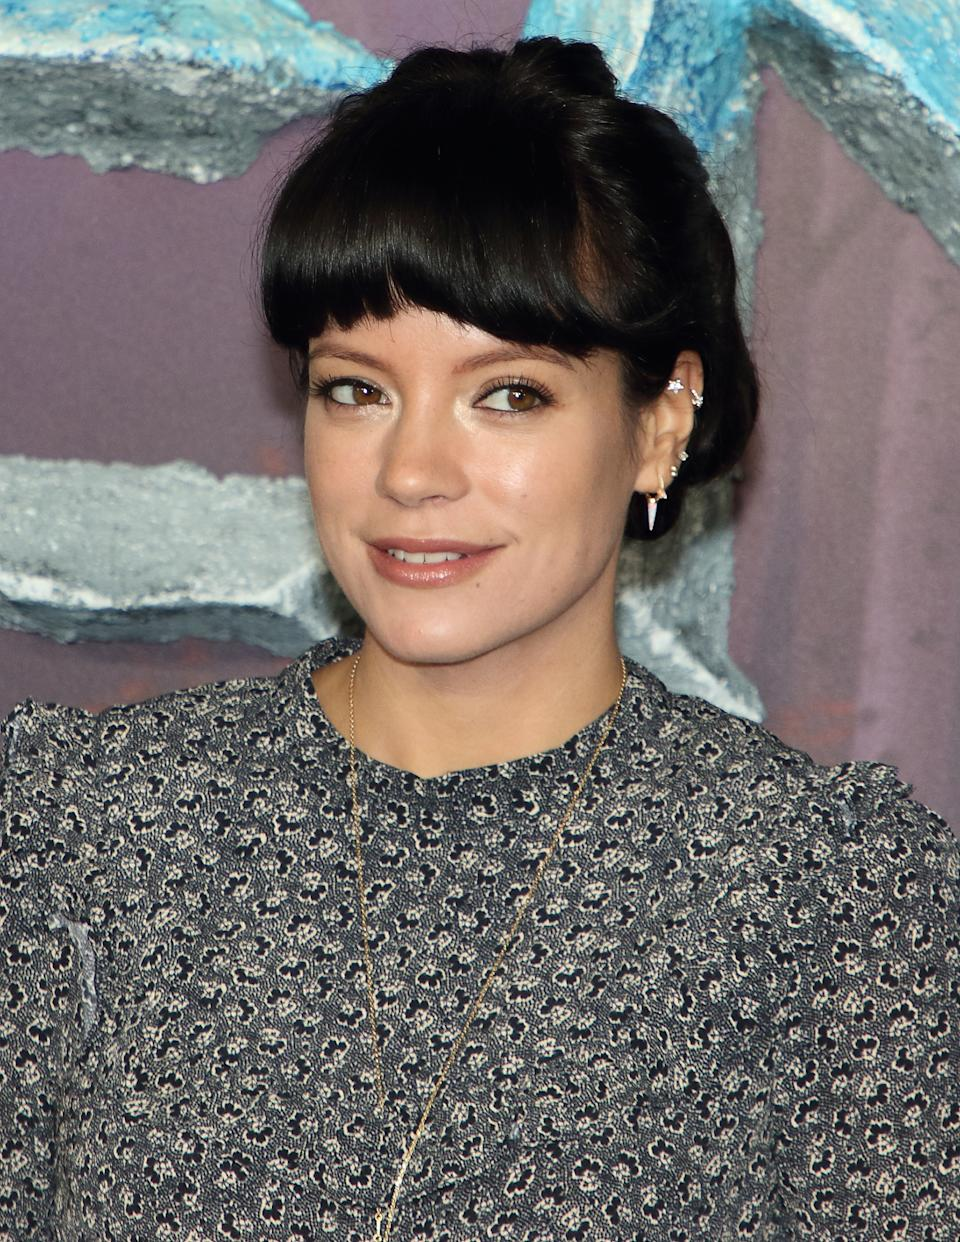 """Lily Allen attends the """"Frozen 2"""" European premiere at BFI Southbank in London. (Photo by Keith Mayhew / SOPA Images/Sipa USA)"""